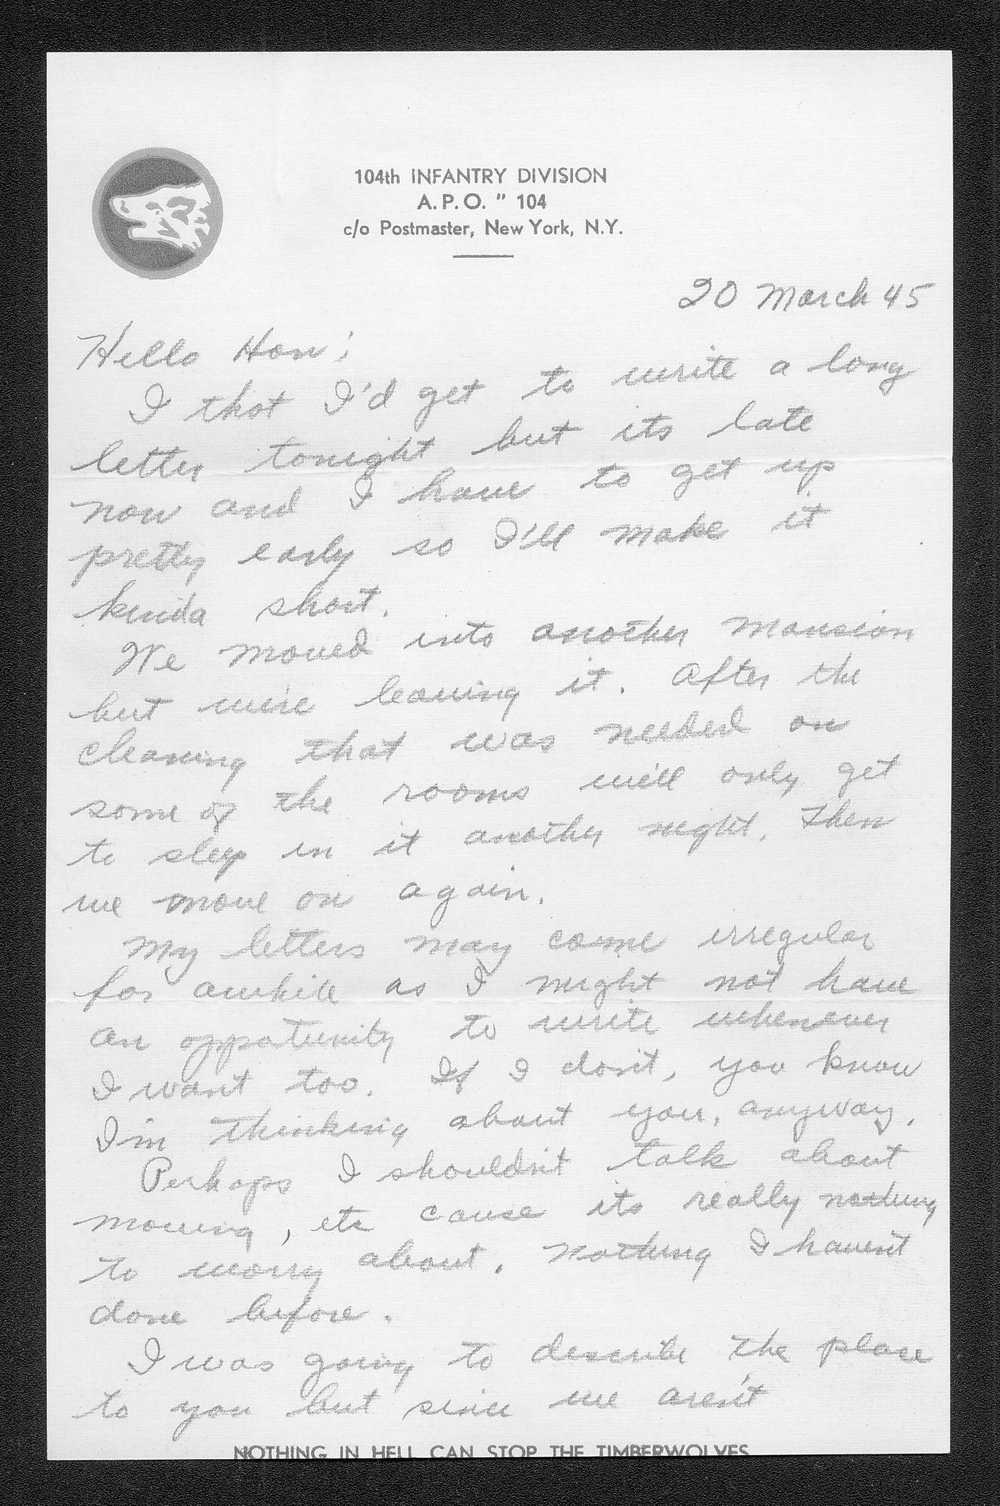 Letters from Hilton Parris Mize to his wife Irene Rosenberger Mize - 6